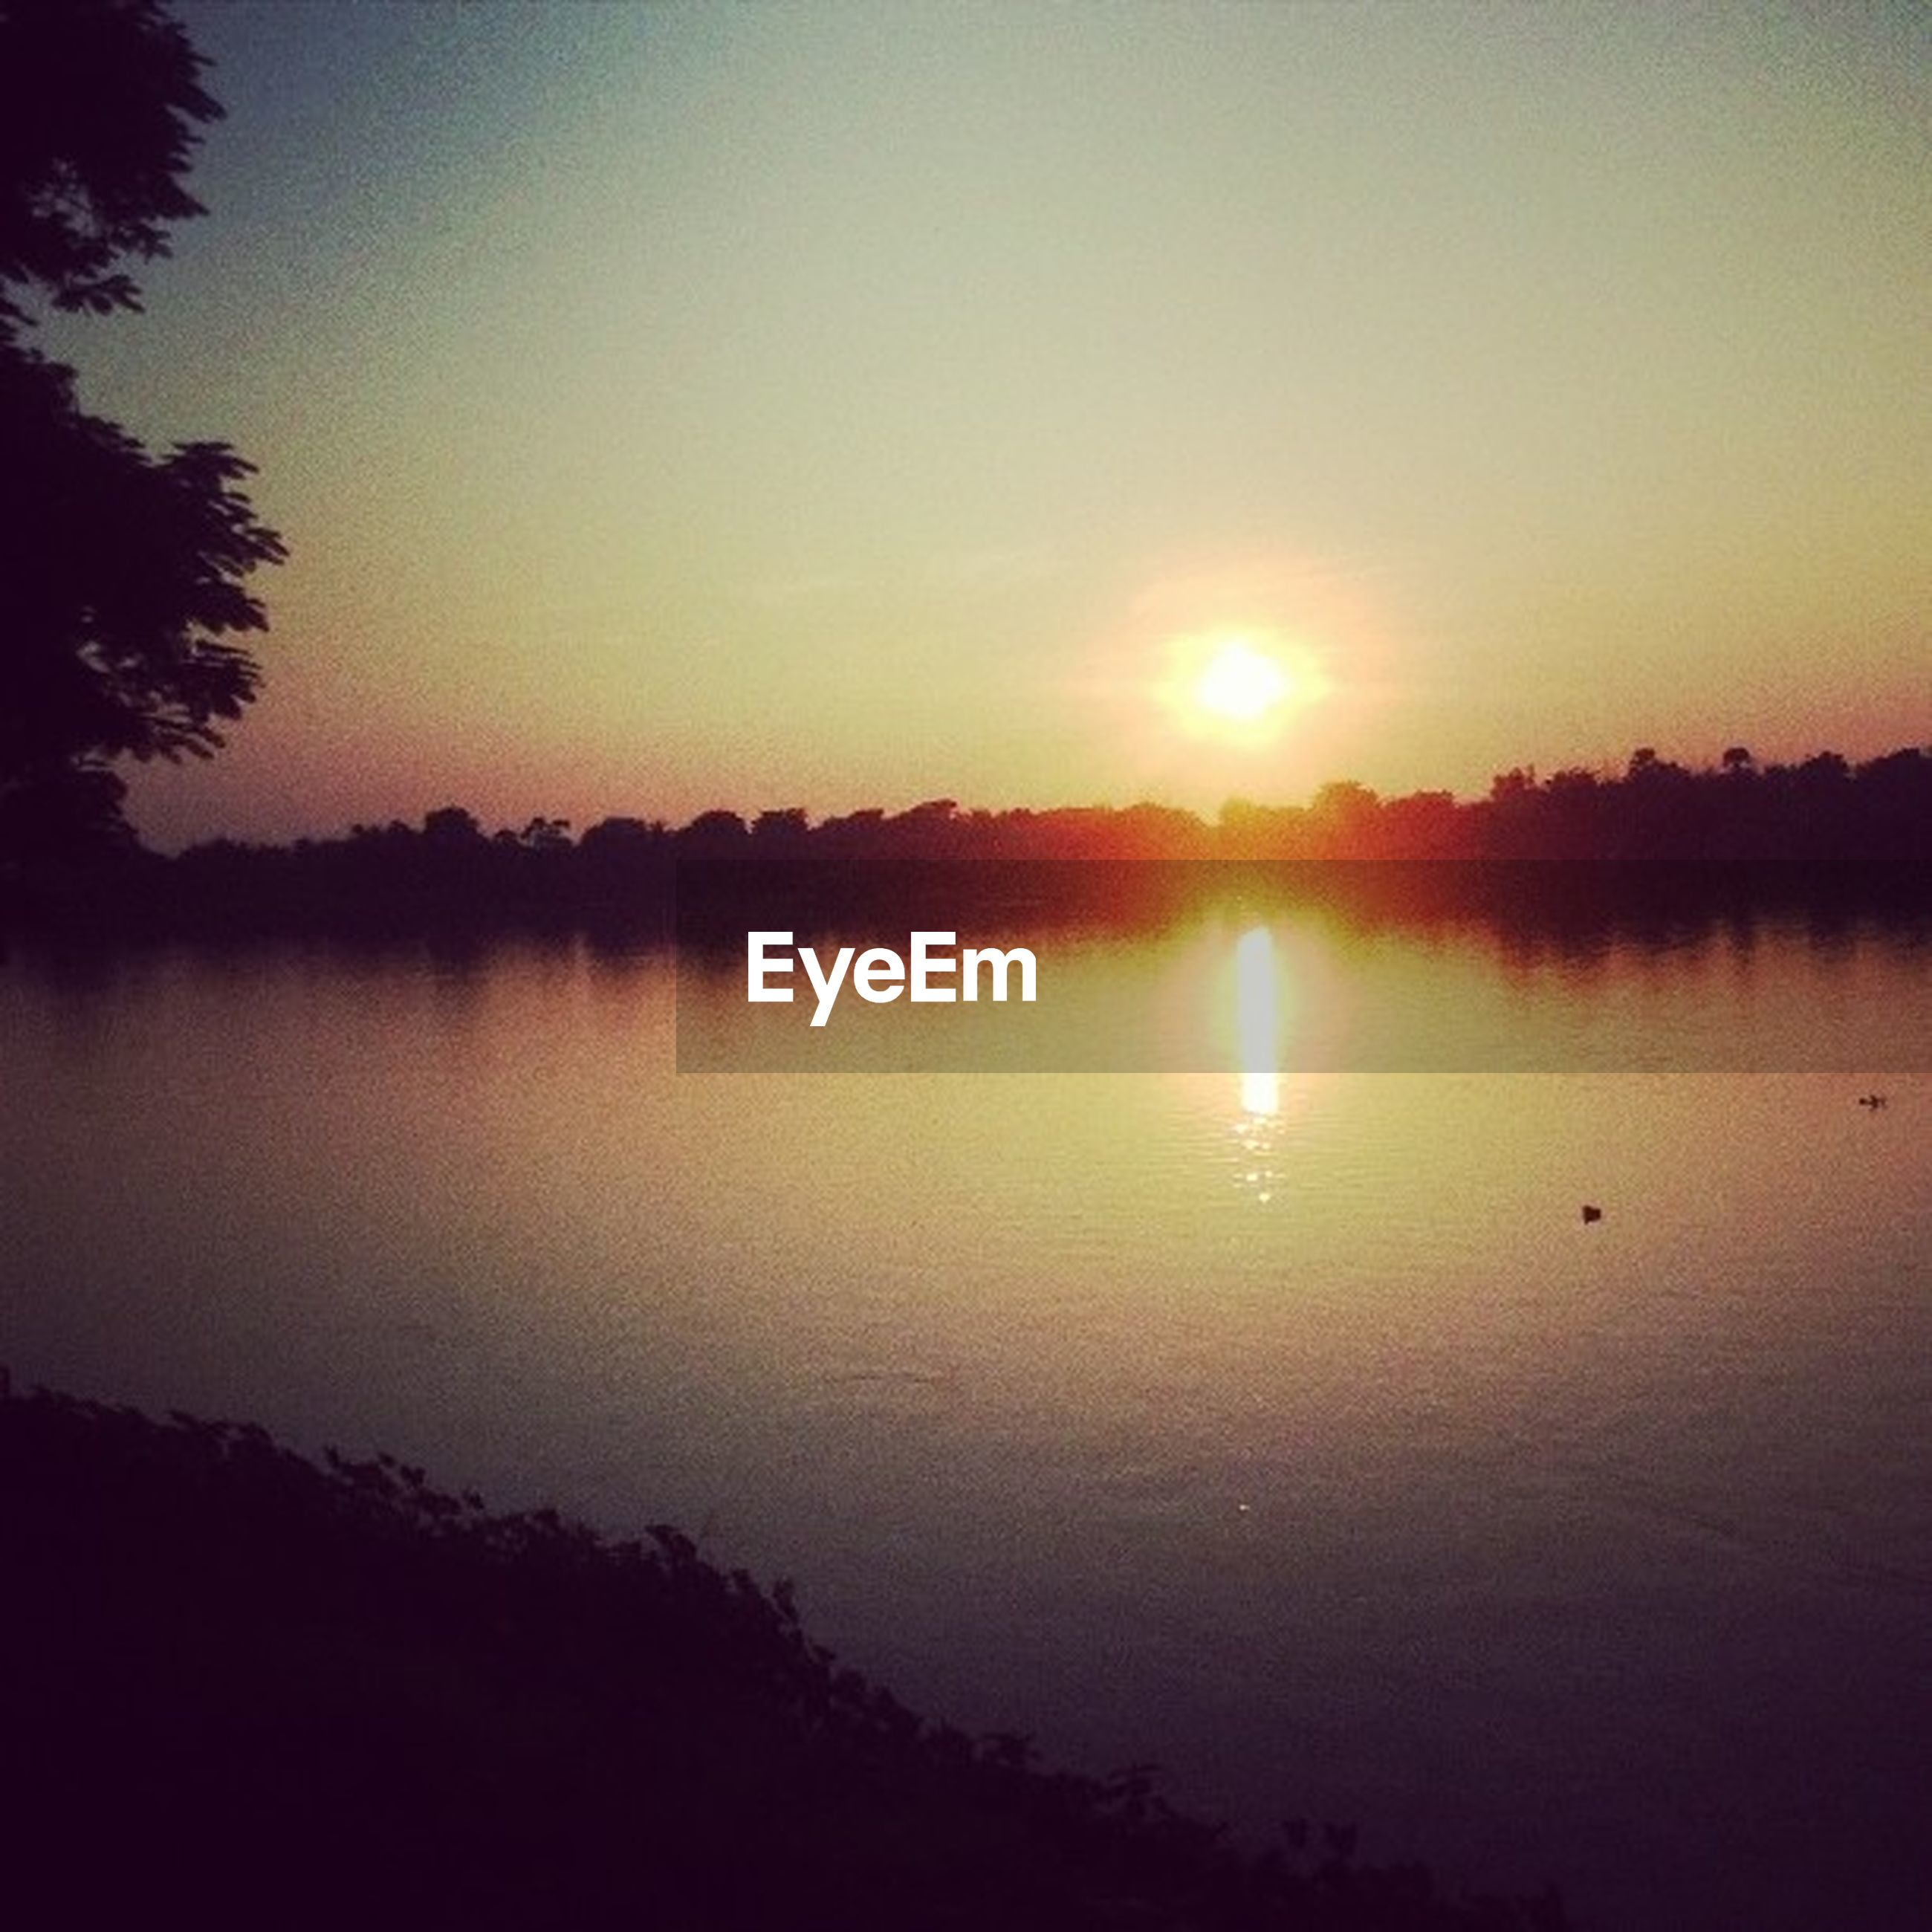 sunset, tranquil scene, sun, silhouette, tranquility, scenics, water, reflection, beauty in nature, lake, tree, nature, idyllic, sky, orange color, clear sky, sunlight, river, outdoors, non-urban scene